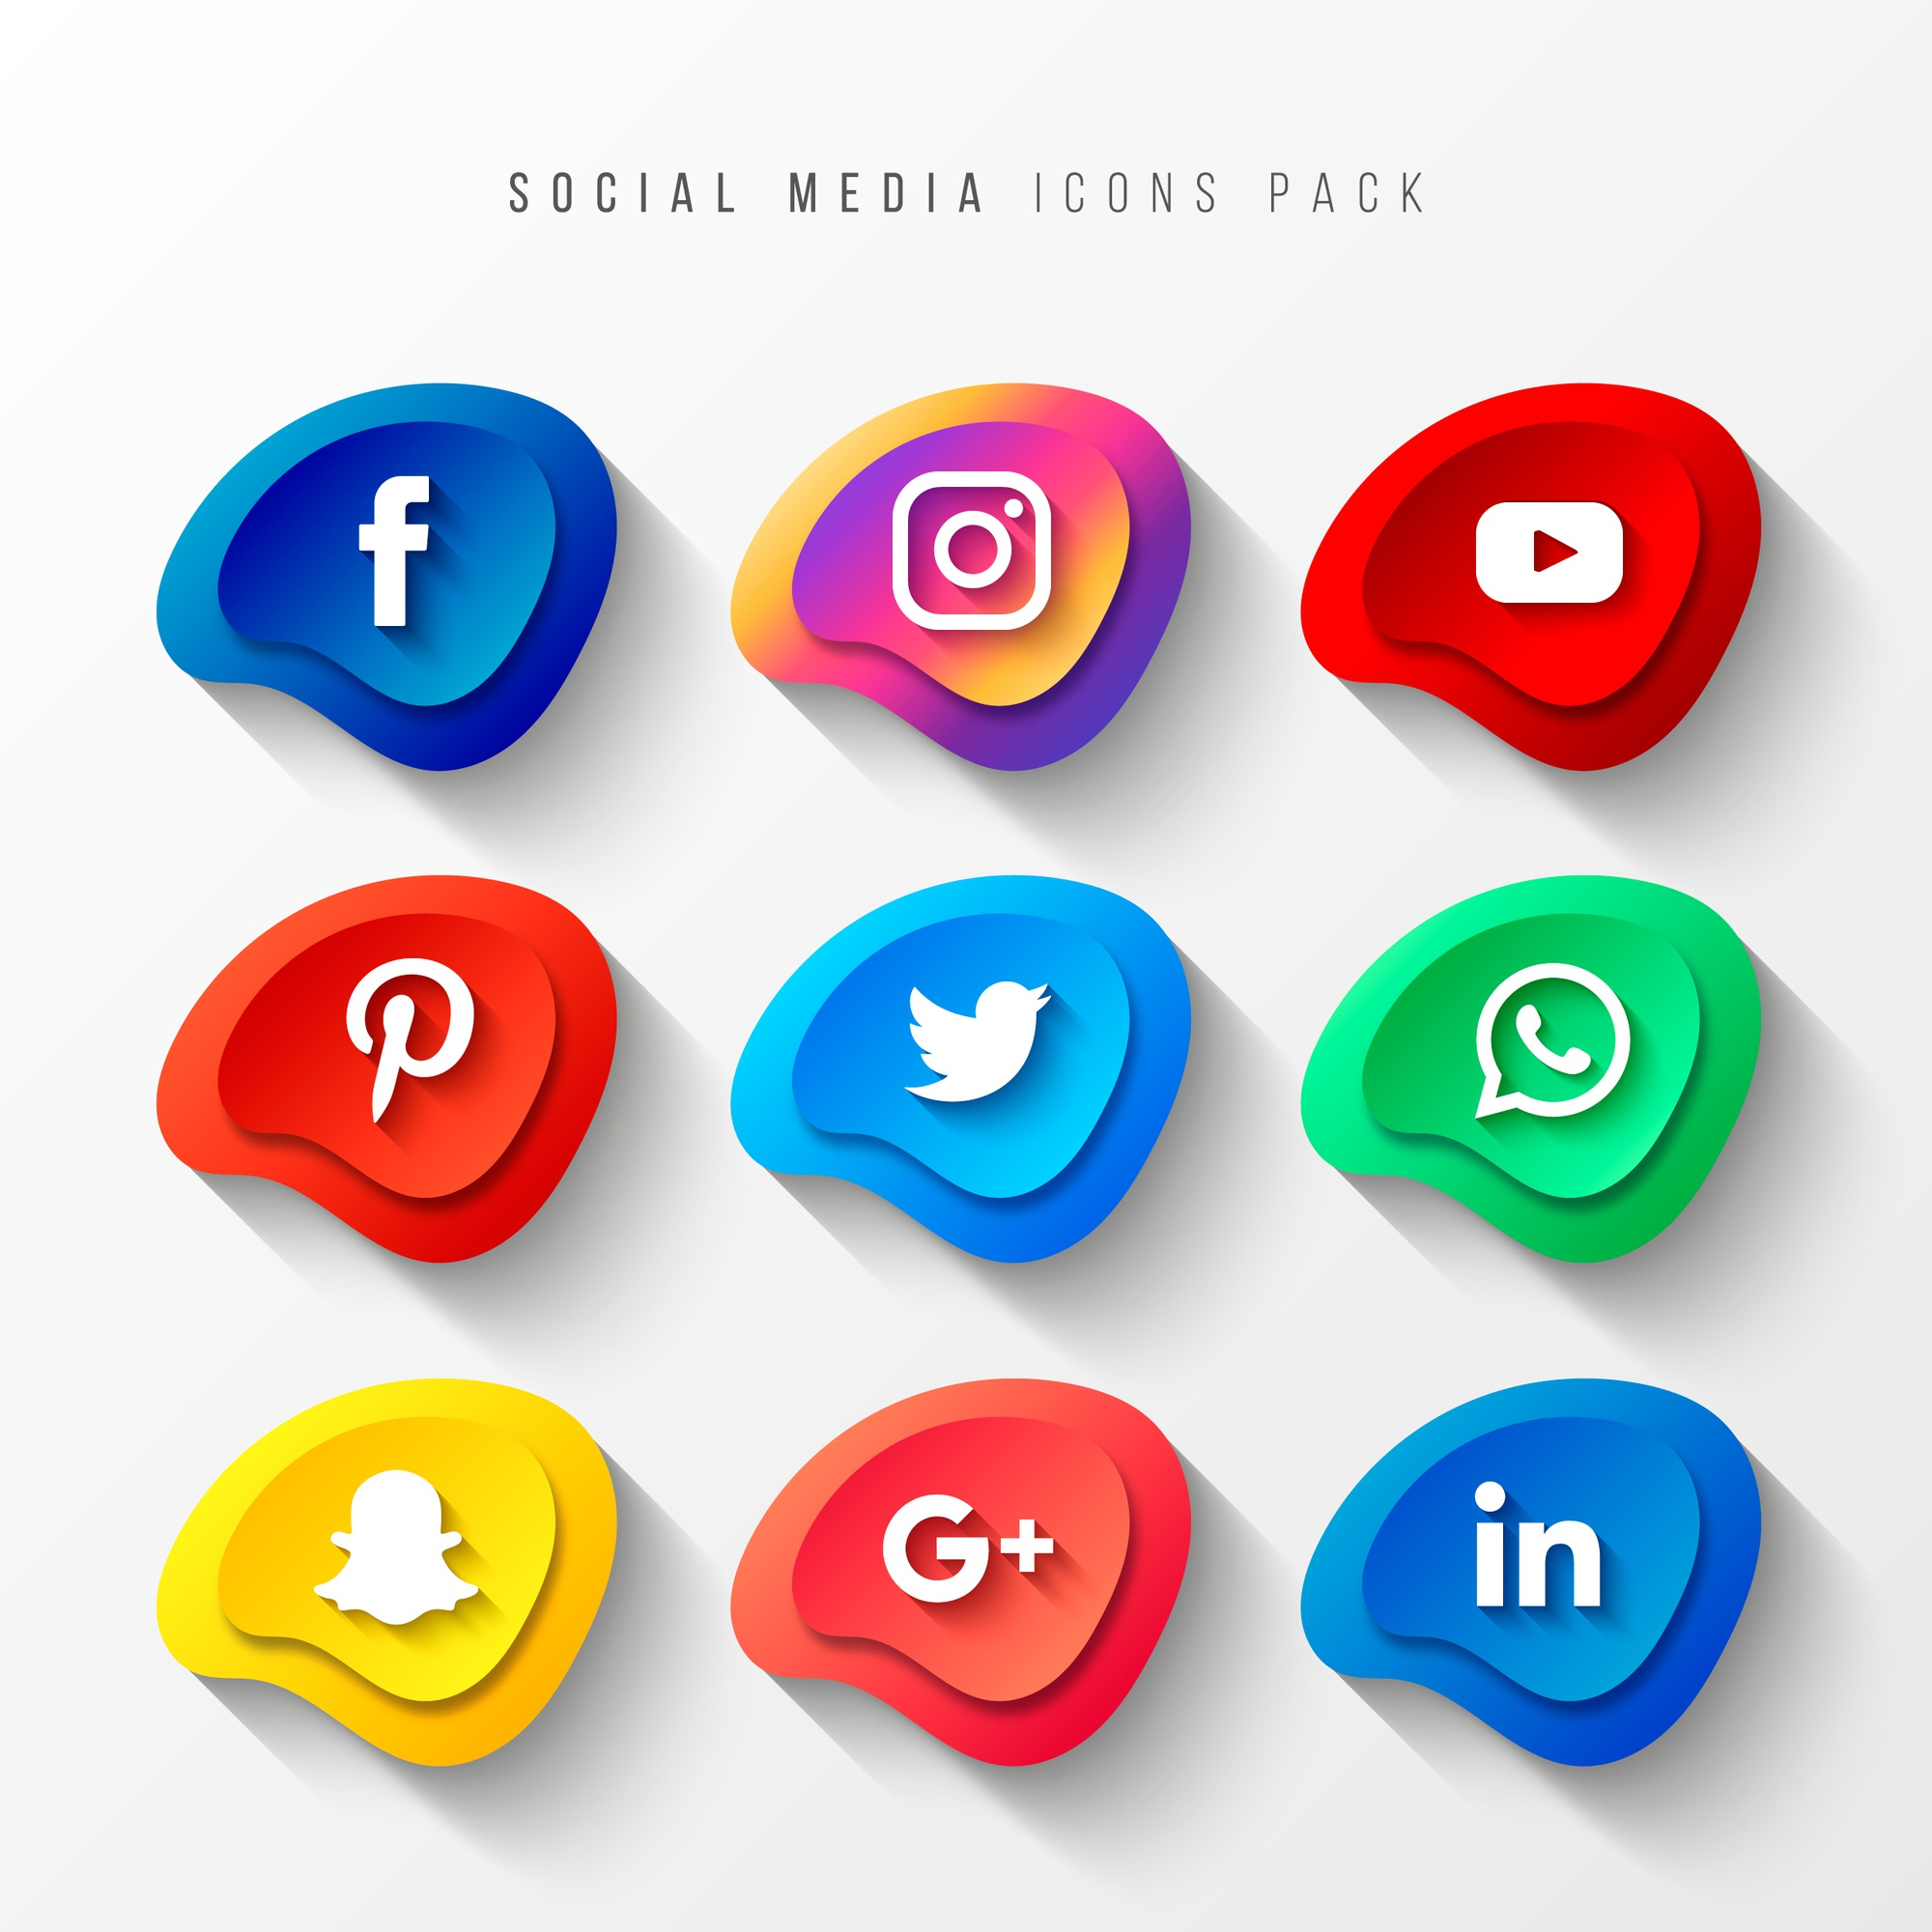 Social Media Icons Pack 3D-knopeffect